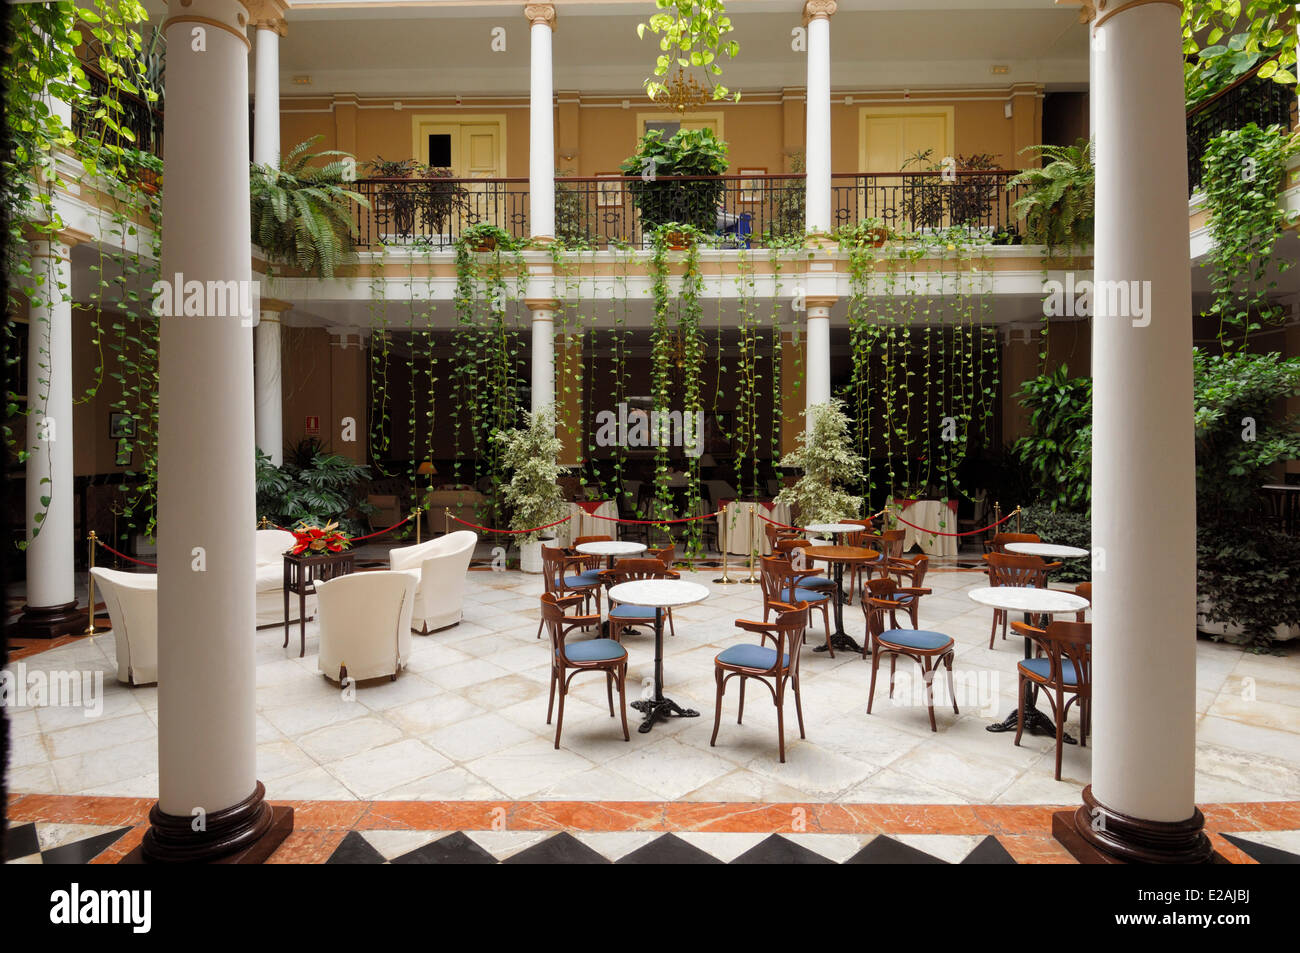 Spain, Canary Islands, Tenerife, La Laguna, patio and hall of the Hotel Aguere - Stock Image